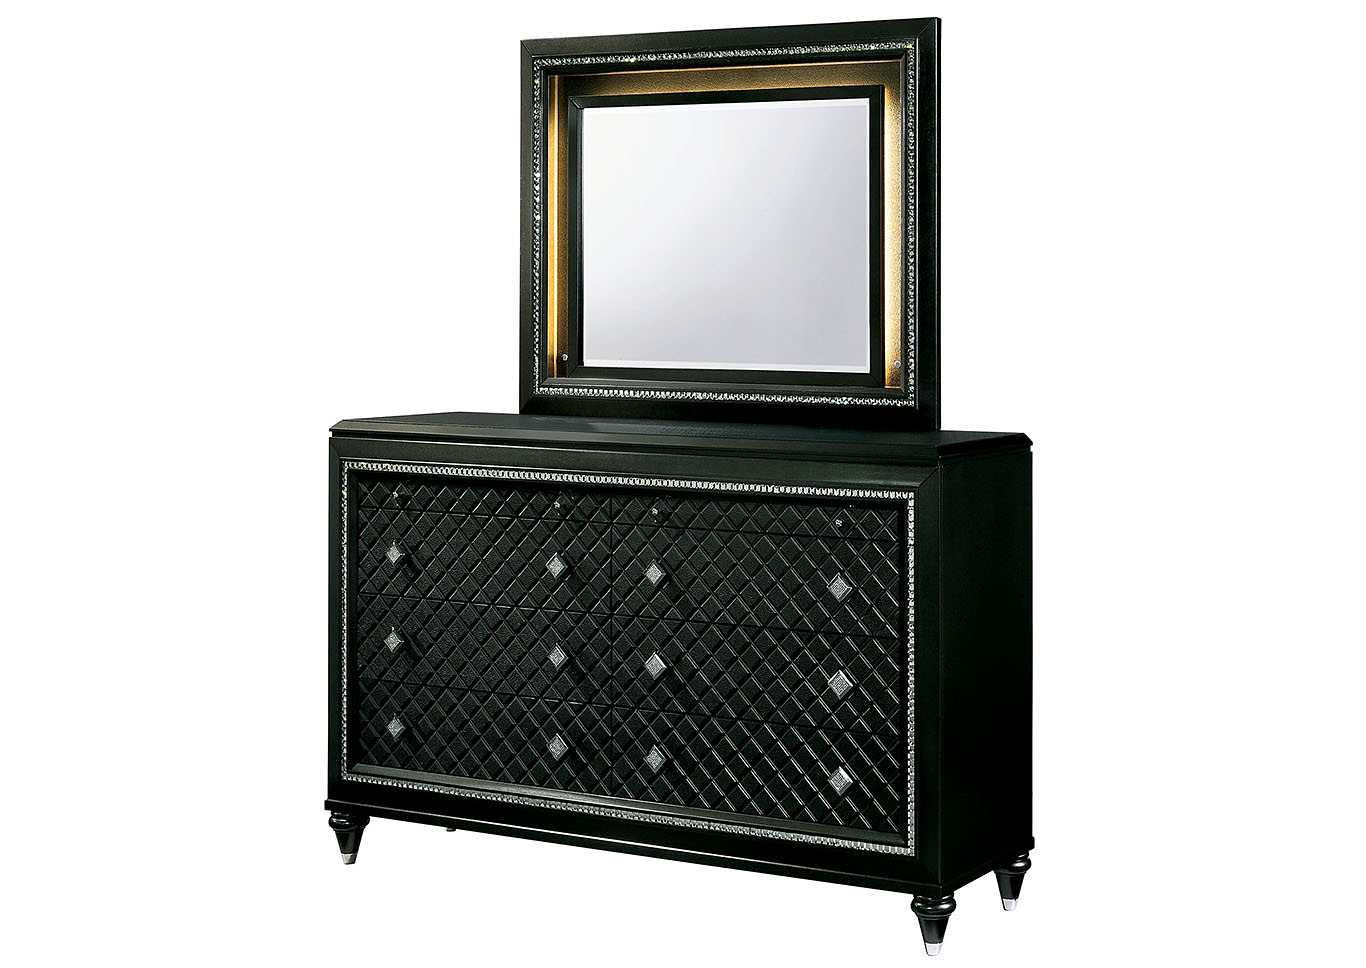 Demetria Black/Metallic Gray LED Eastern King Storage Bed w/Dresser and Mirror,Furniture of America